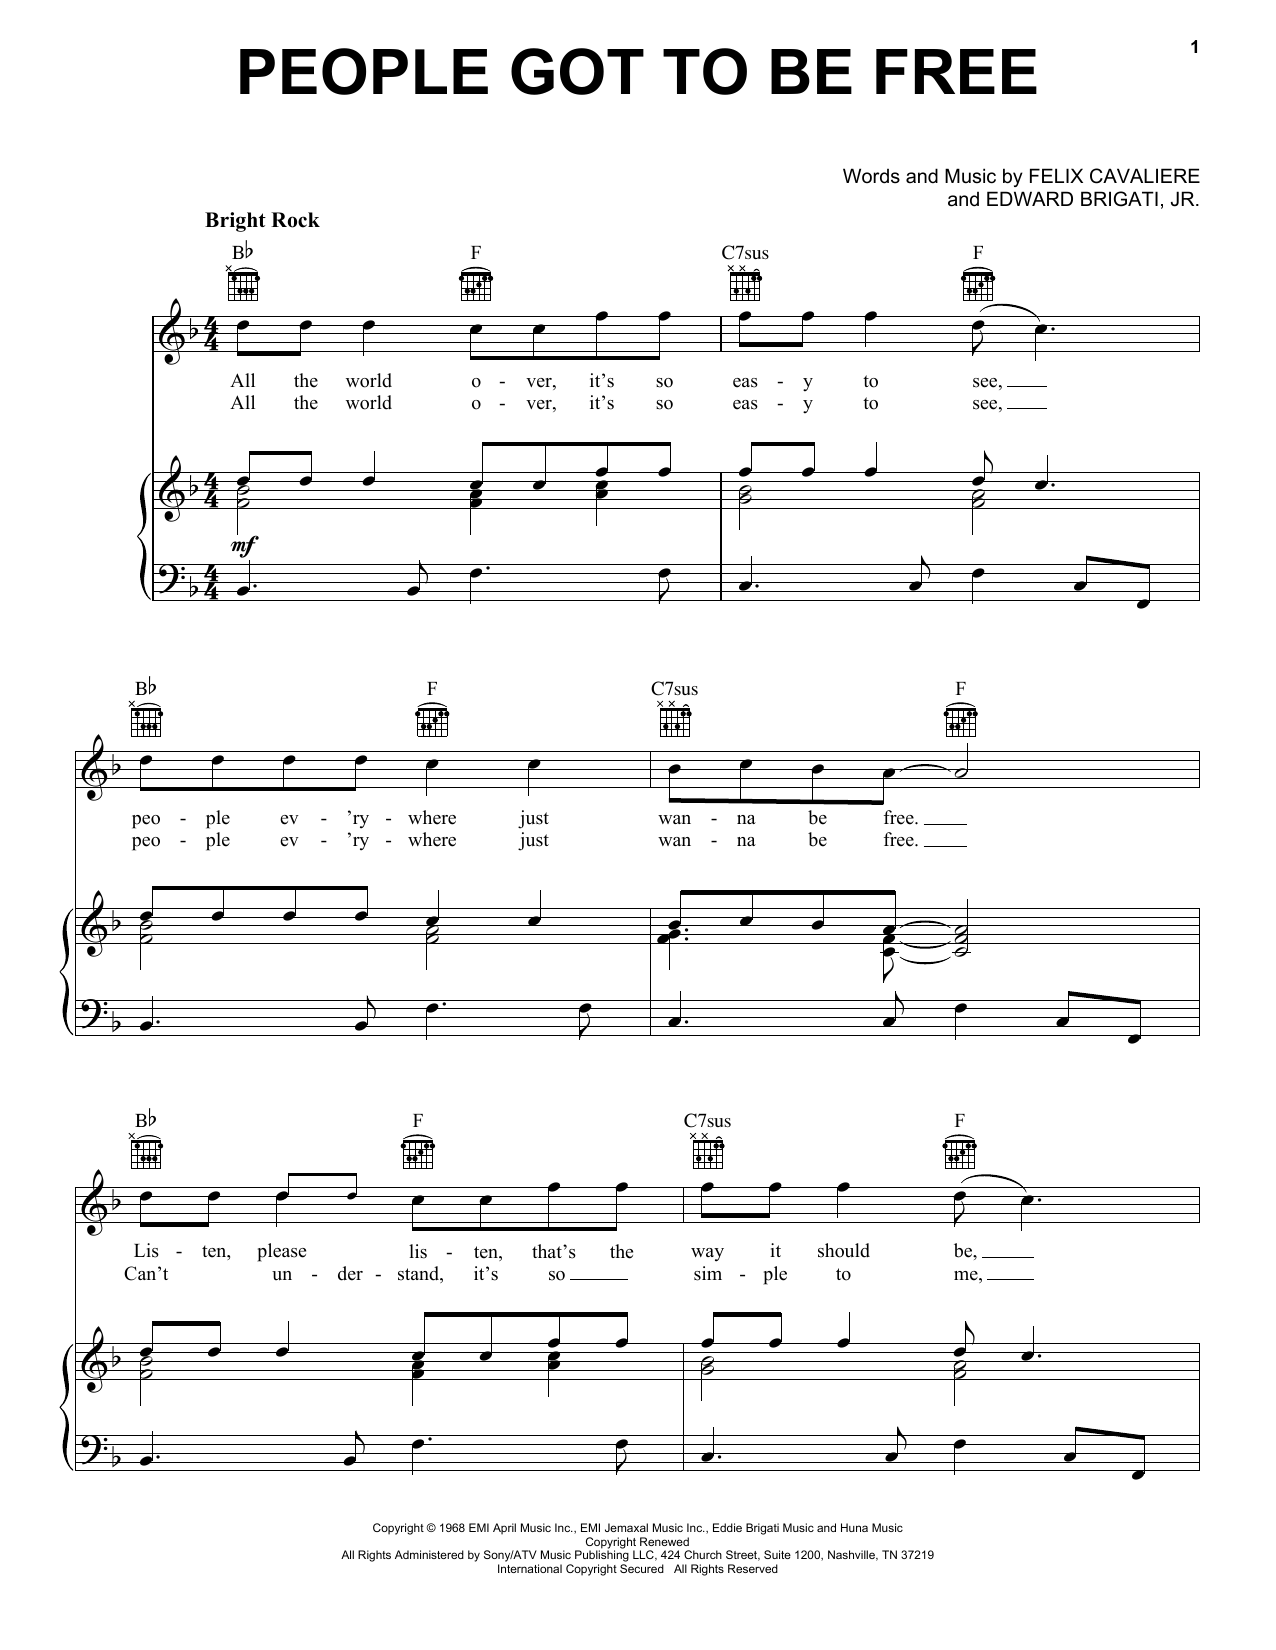 The Rascals People Got To Be Free sheet music notes and chords. Download Printable PDF.